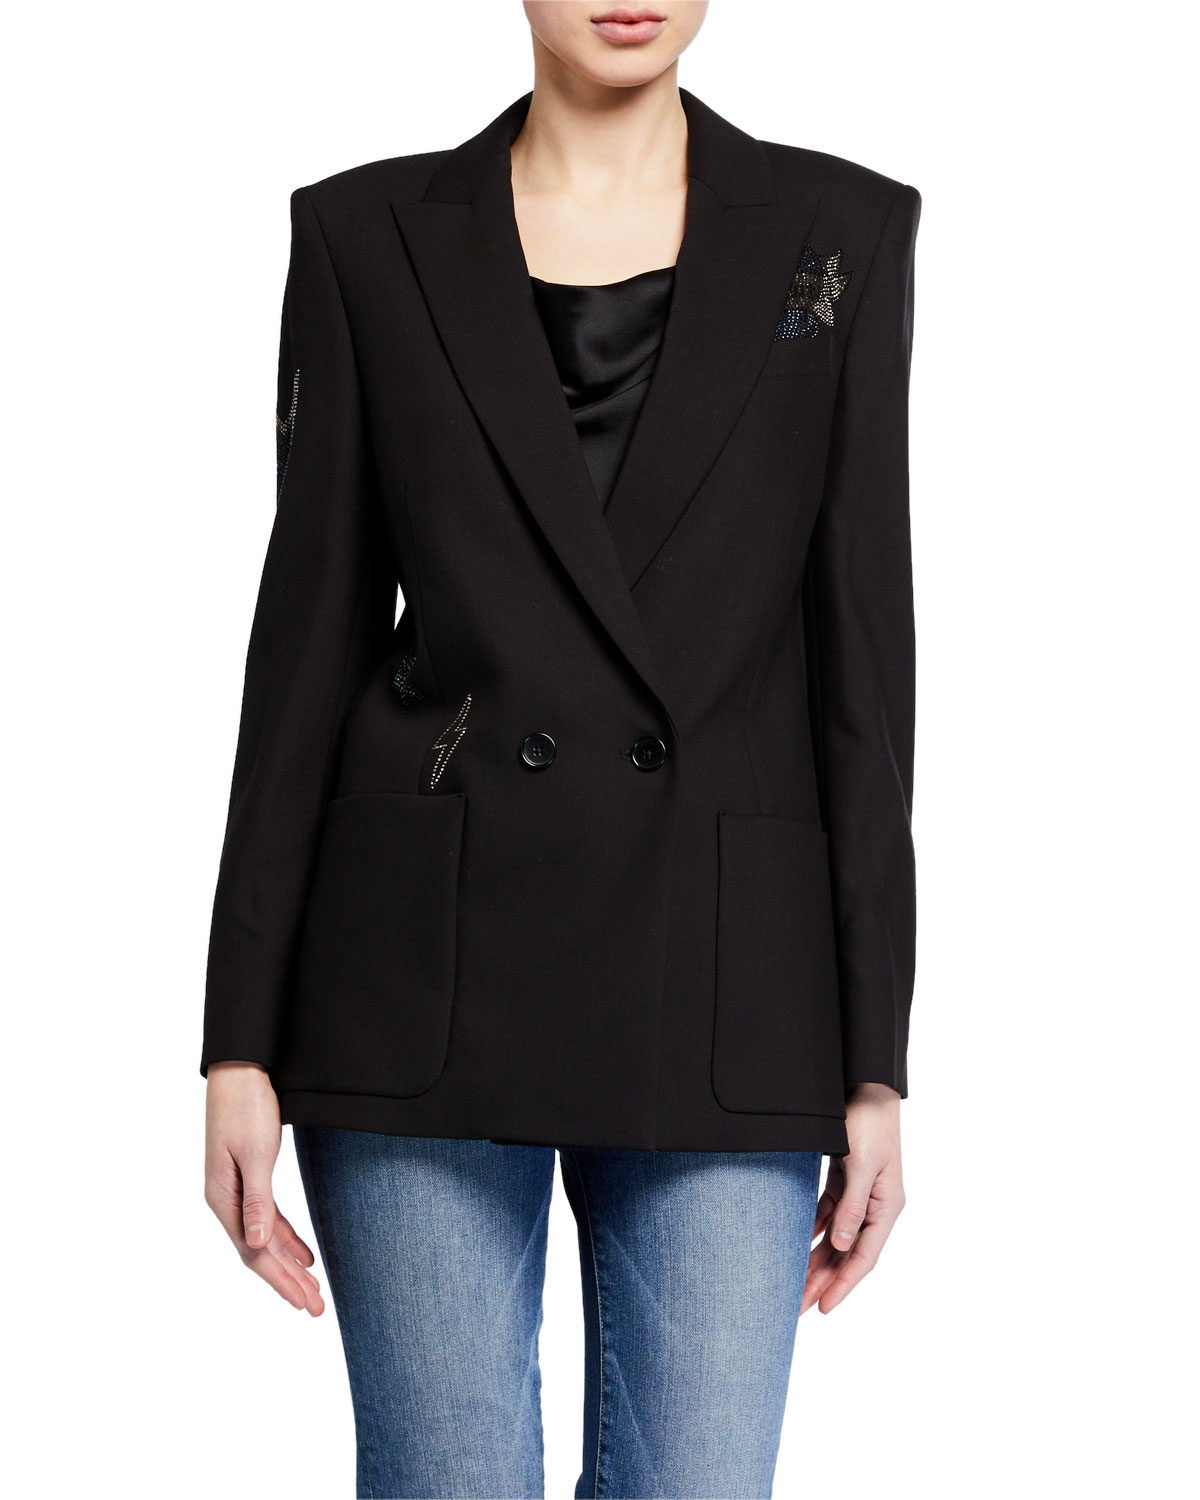 Zadig & Voltaire Visko Rhinestone Double-Breasted Jacket